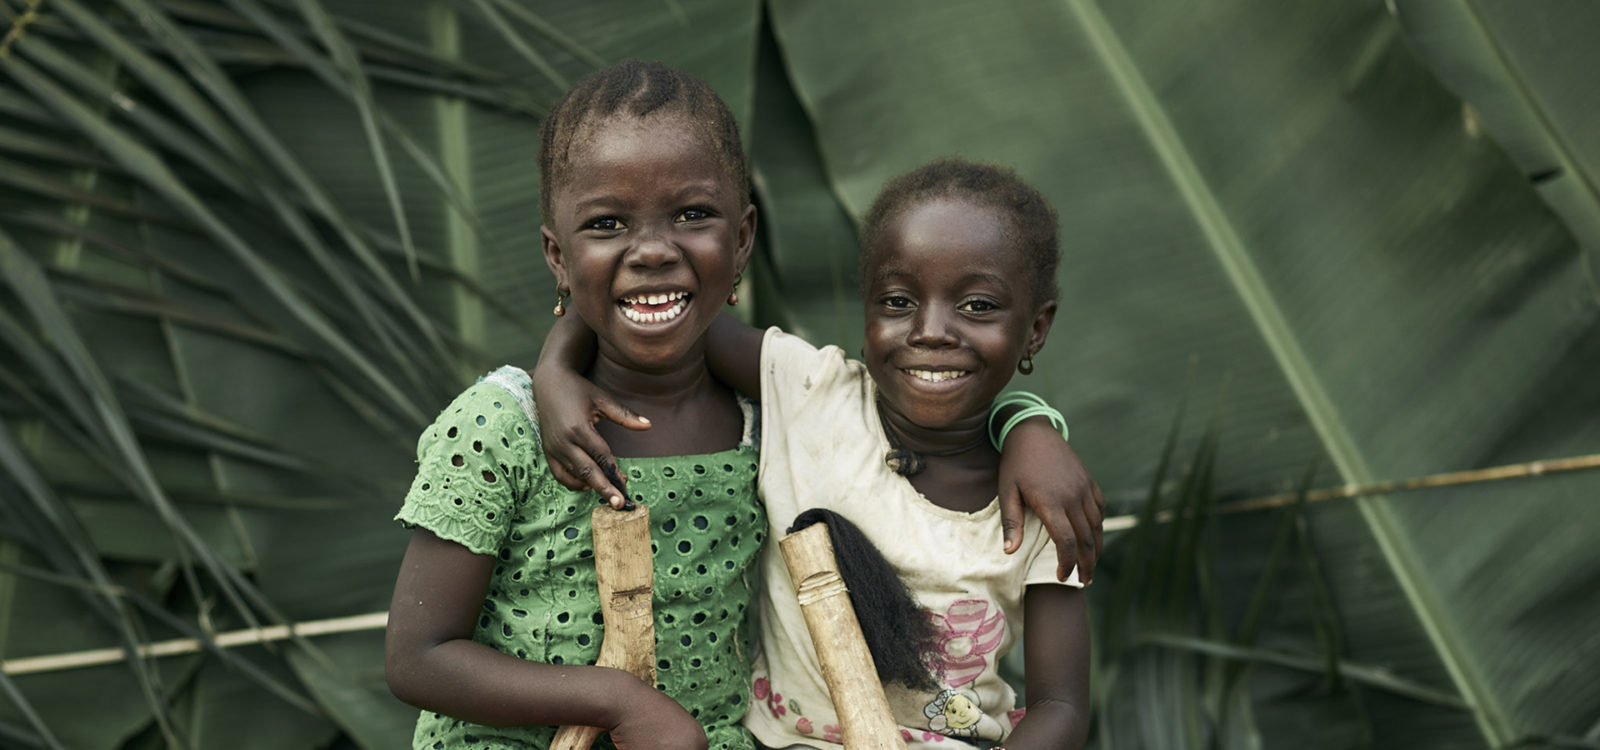 Portrait of two young girls from the village of Tombohuan hugging and smiling